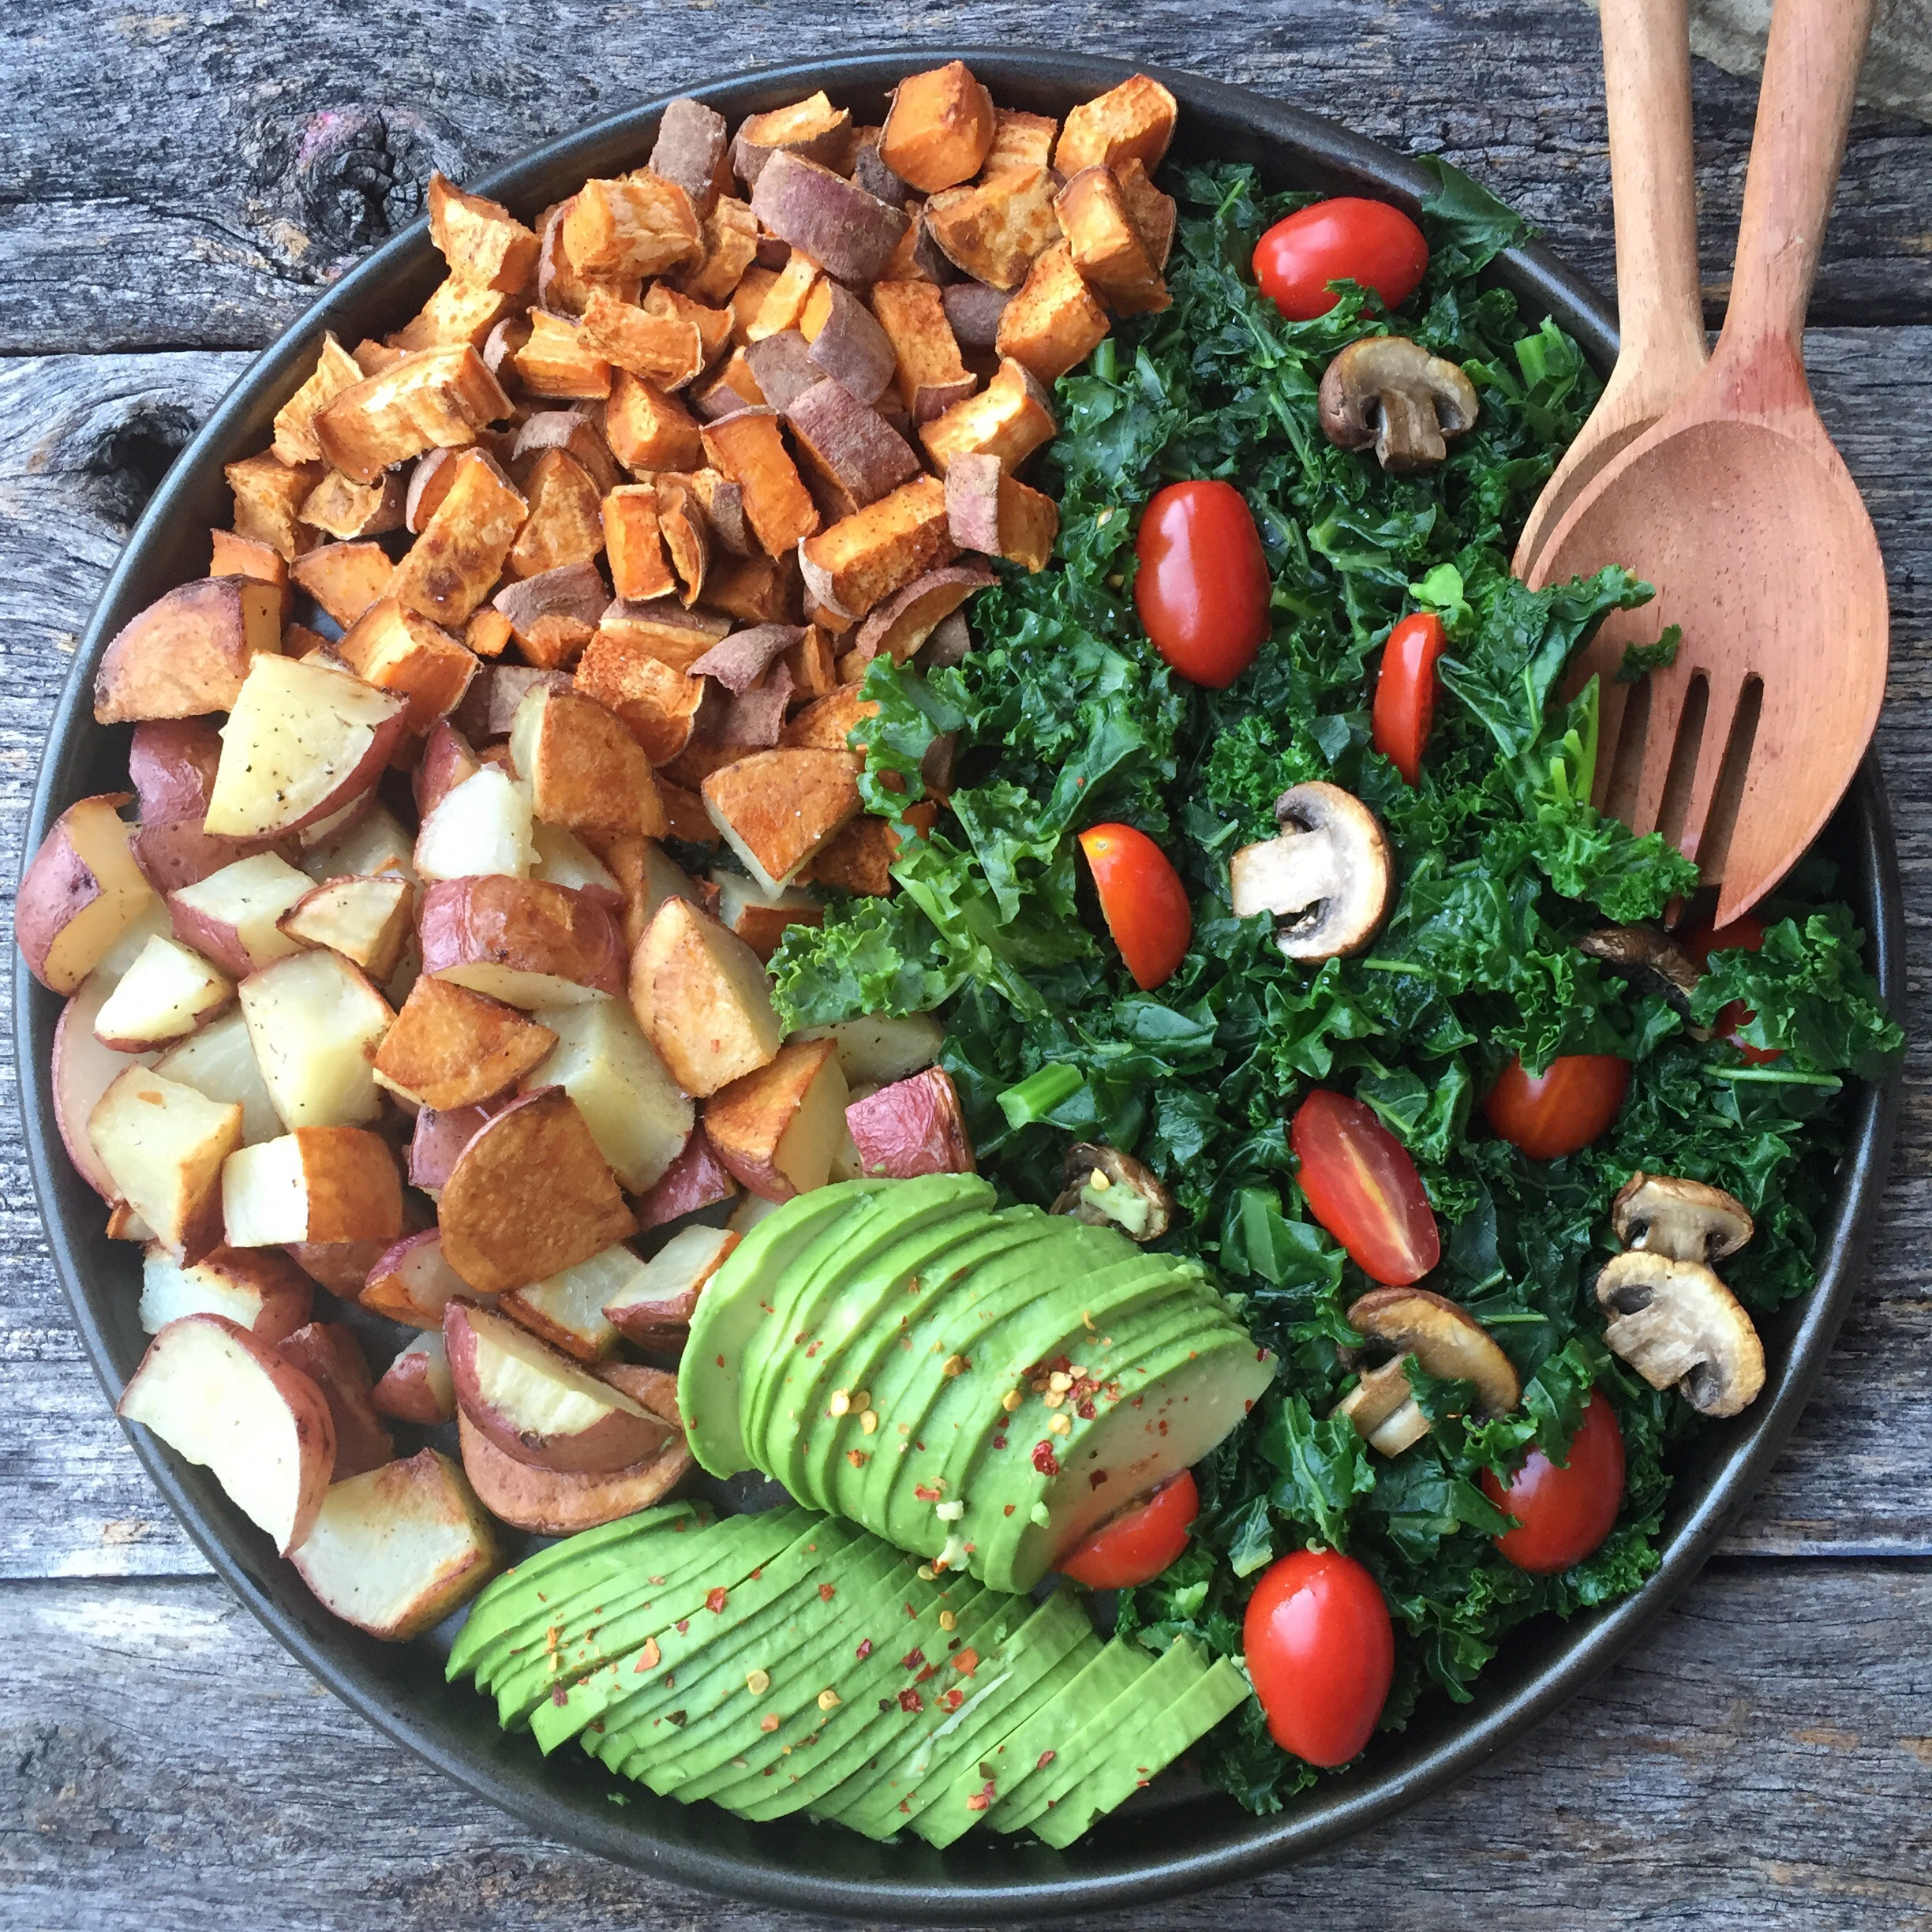 Roasted Potatoes with Garlic Kale